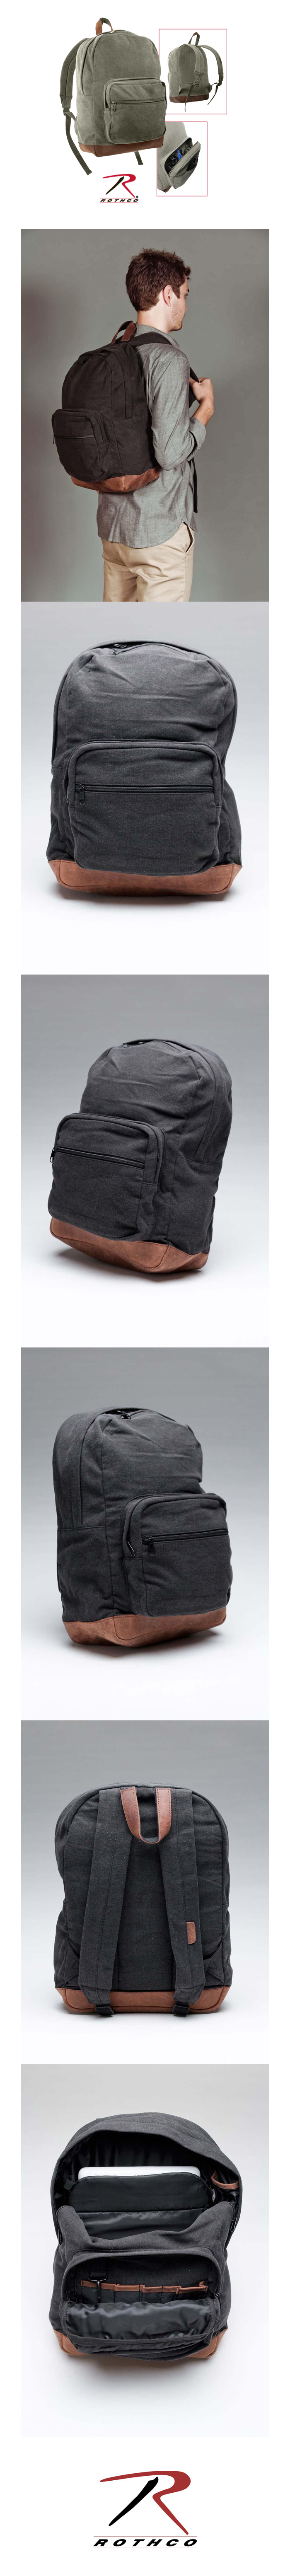 CANVAS TEARDROP PACK OLIVE WITH LEATHER